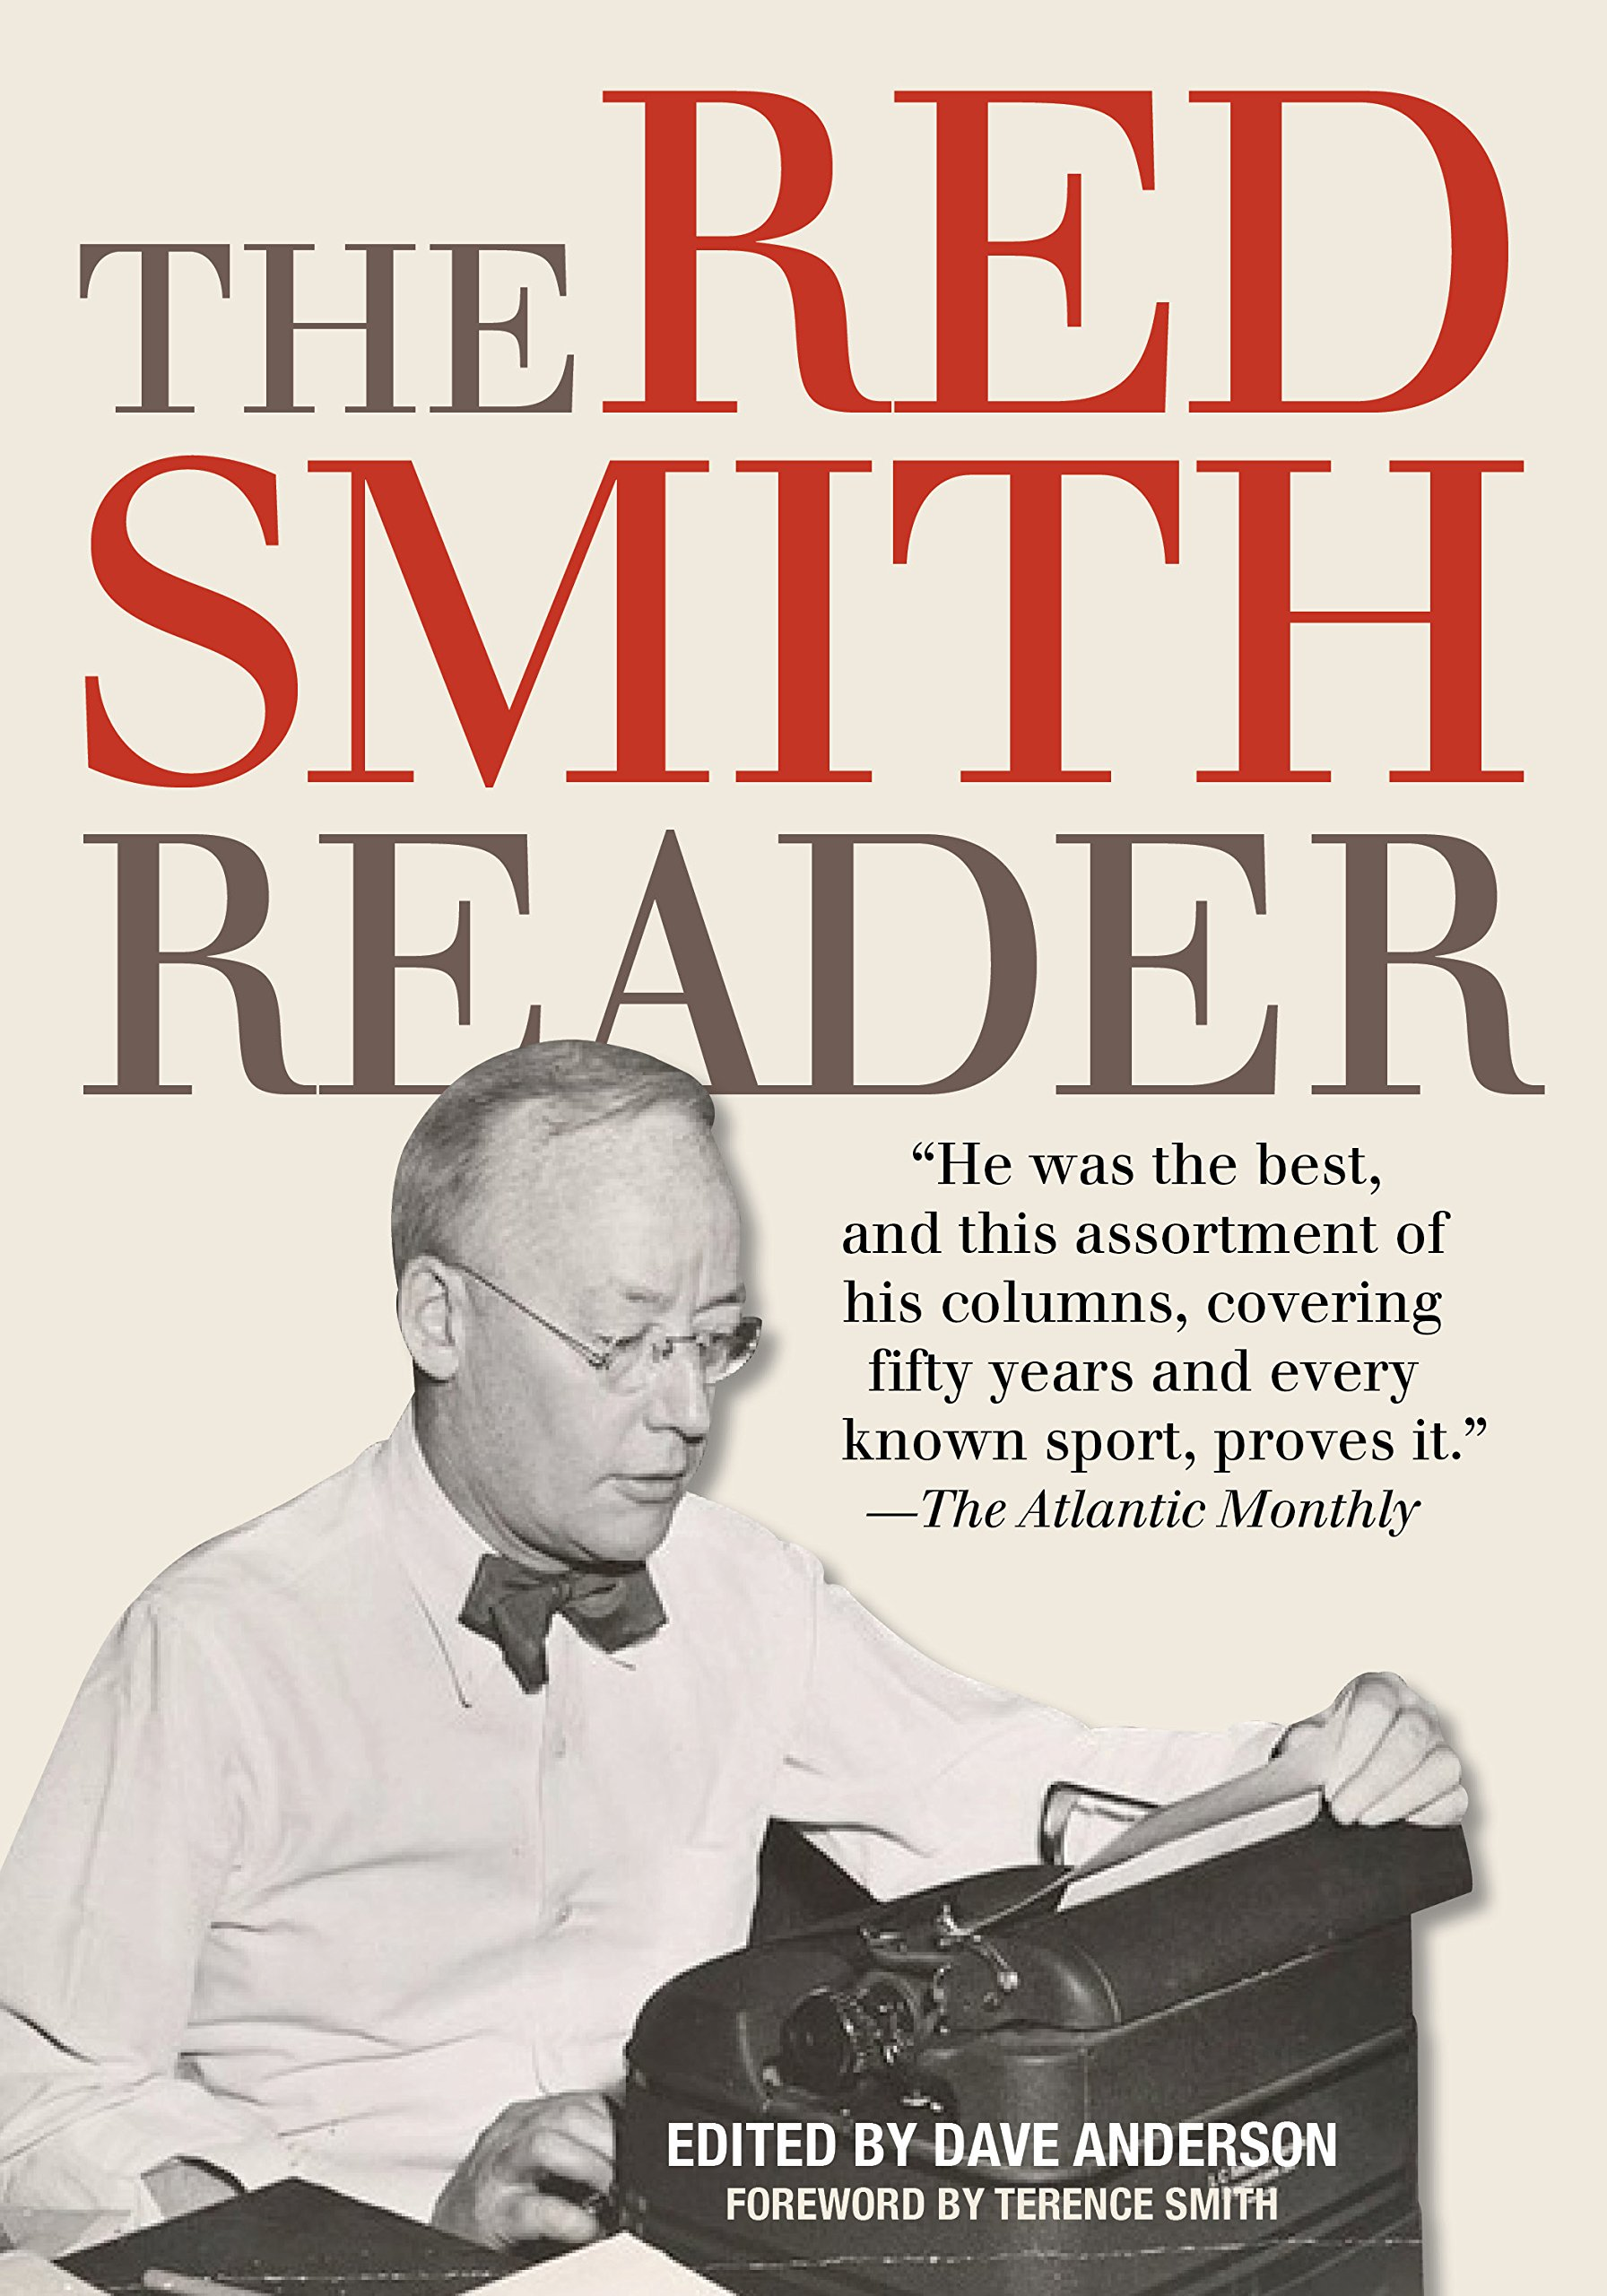 The Red Smith Reader by Skyhorse Publishing